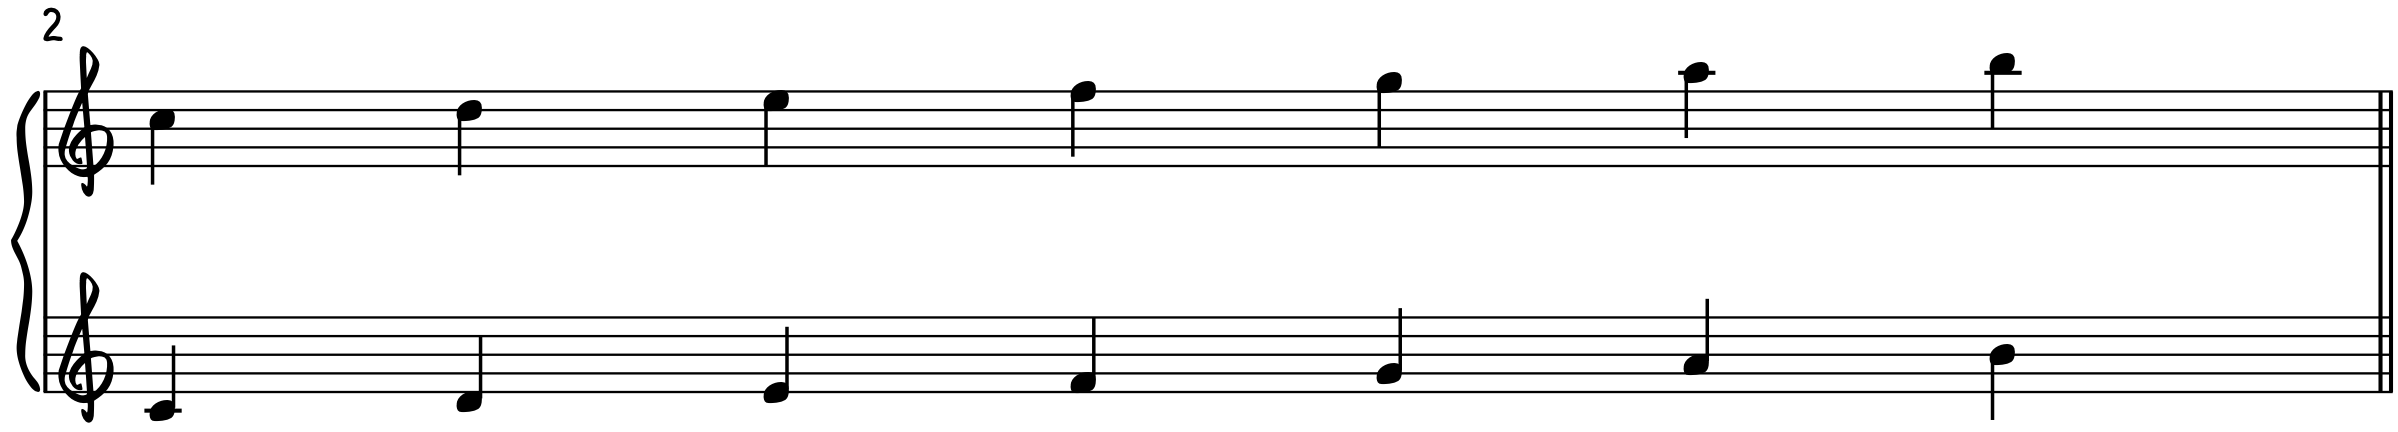 Step 2-Double the Melody 8vb block chords